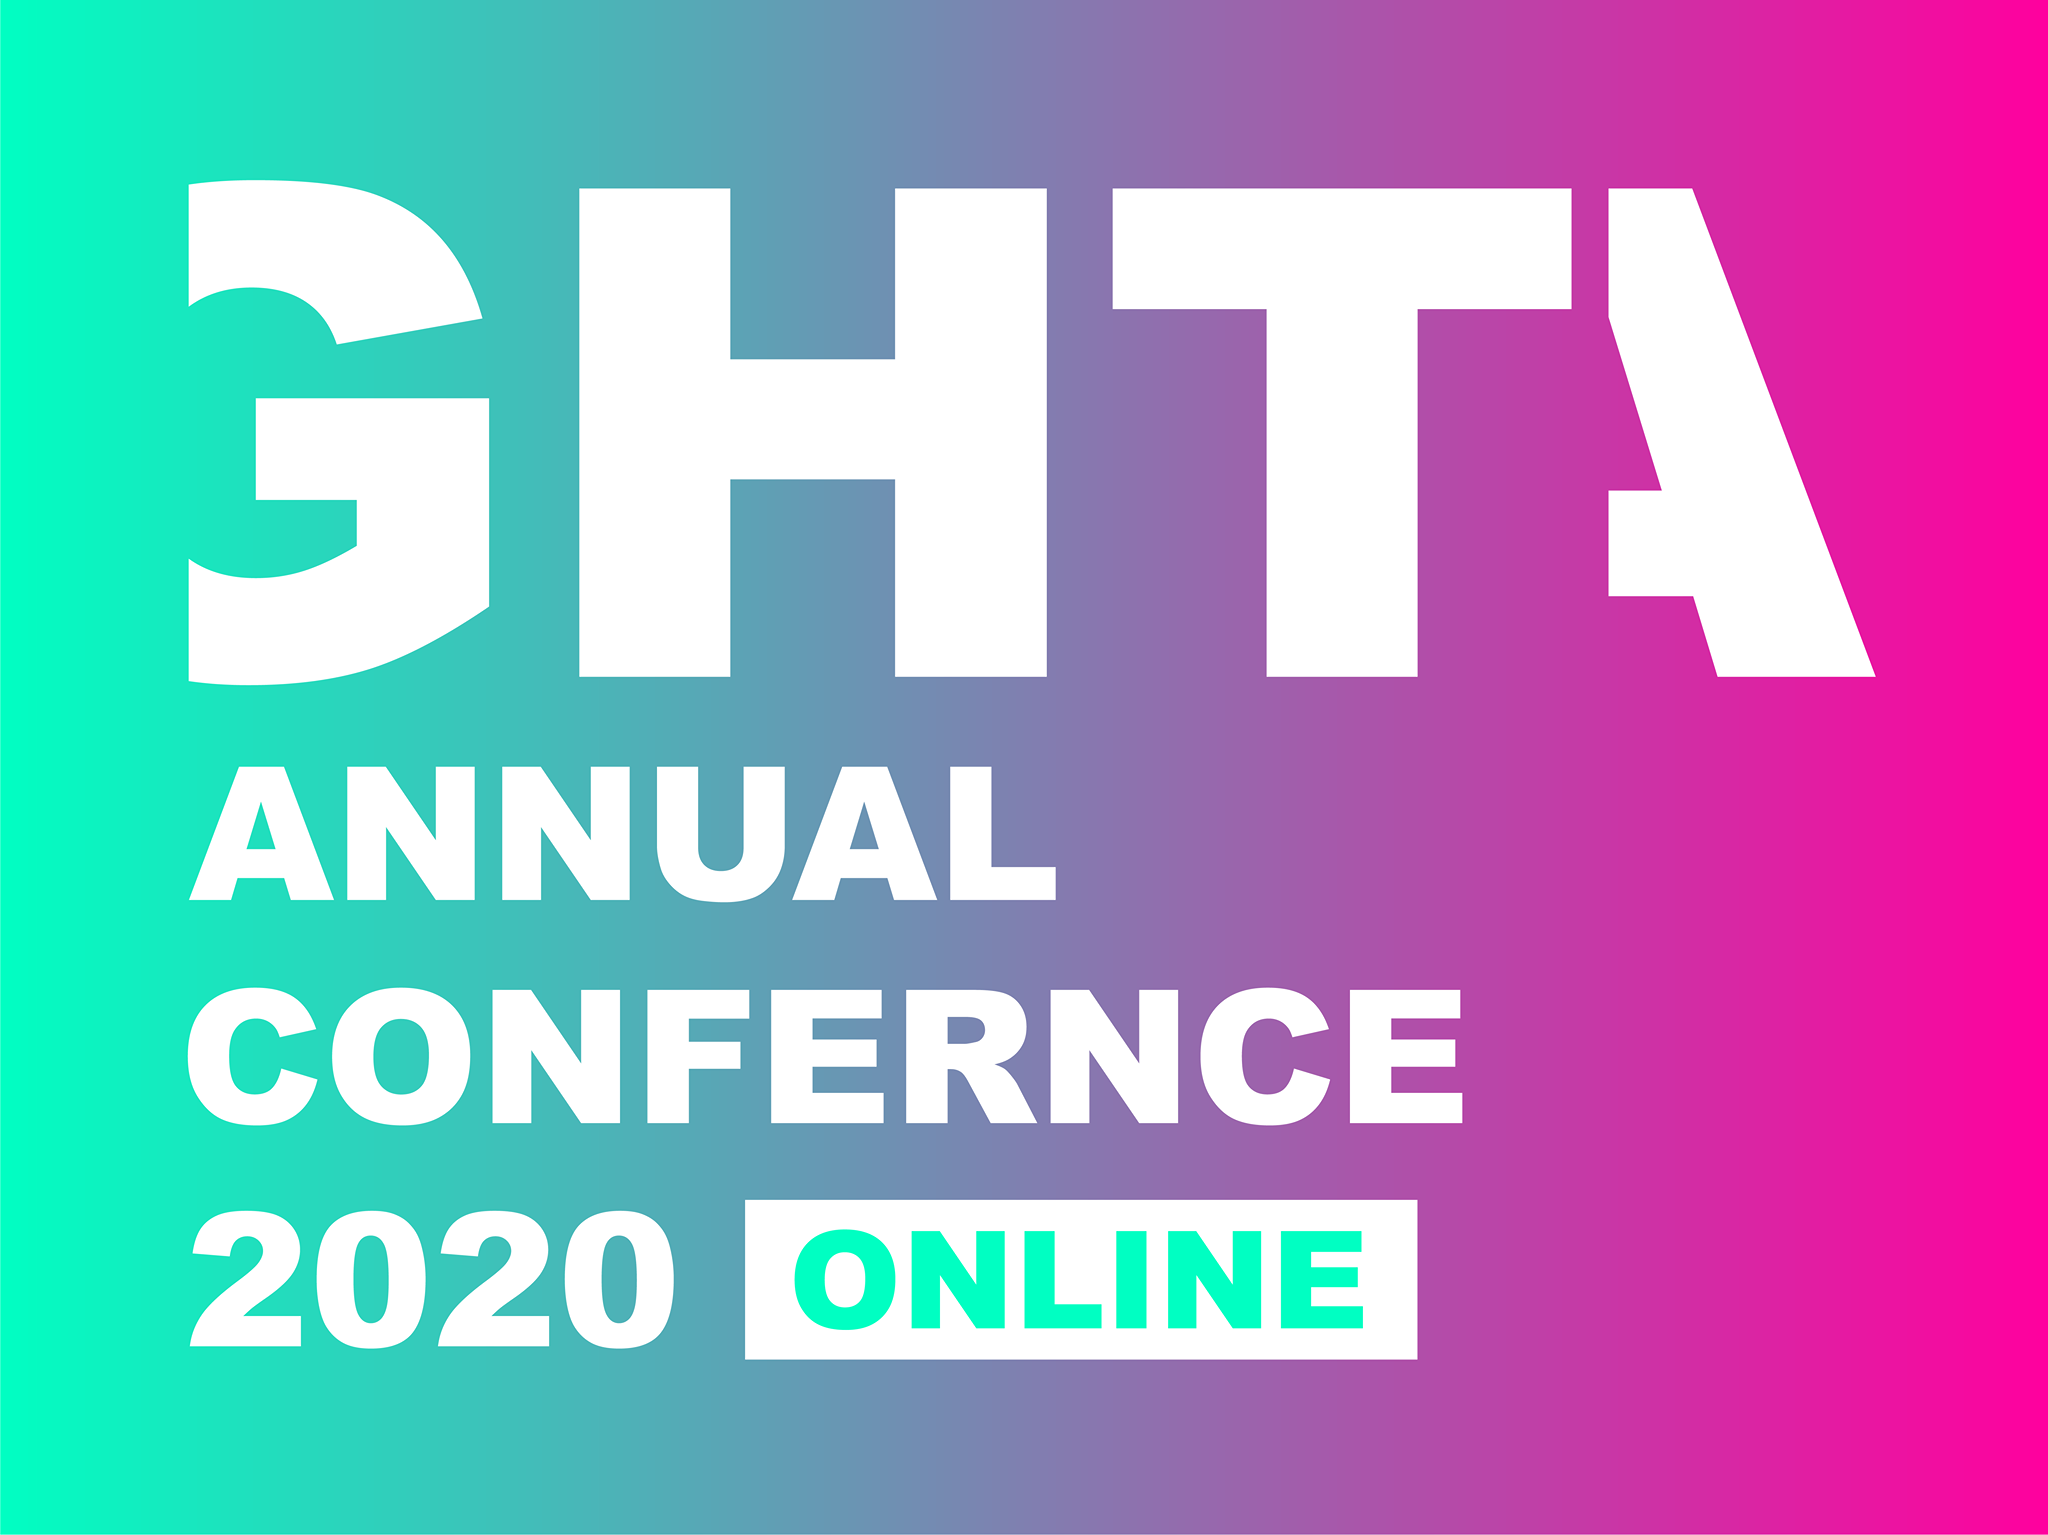 GHTAconference2020